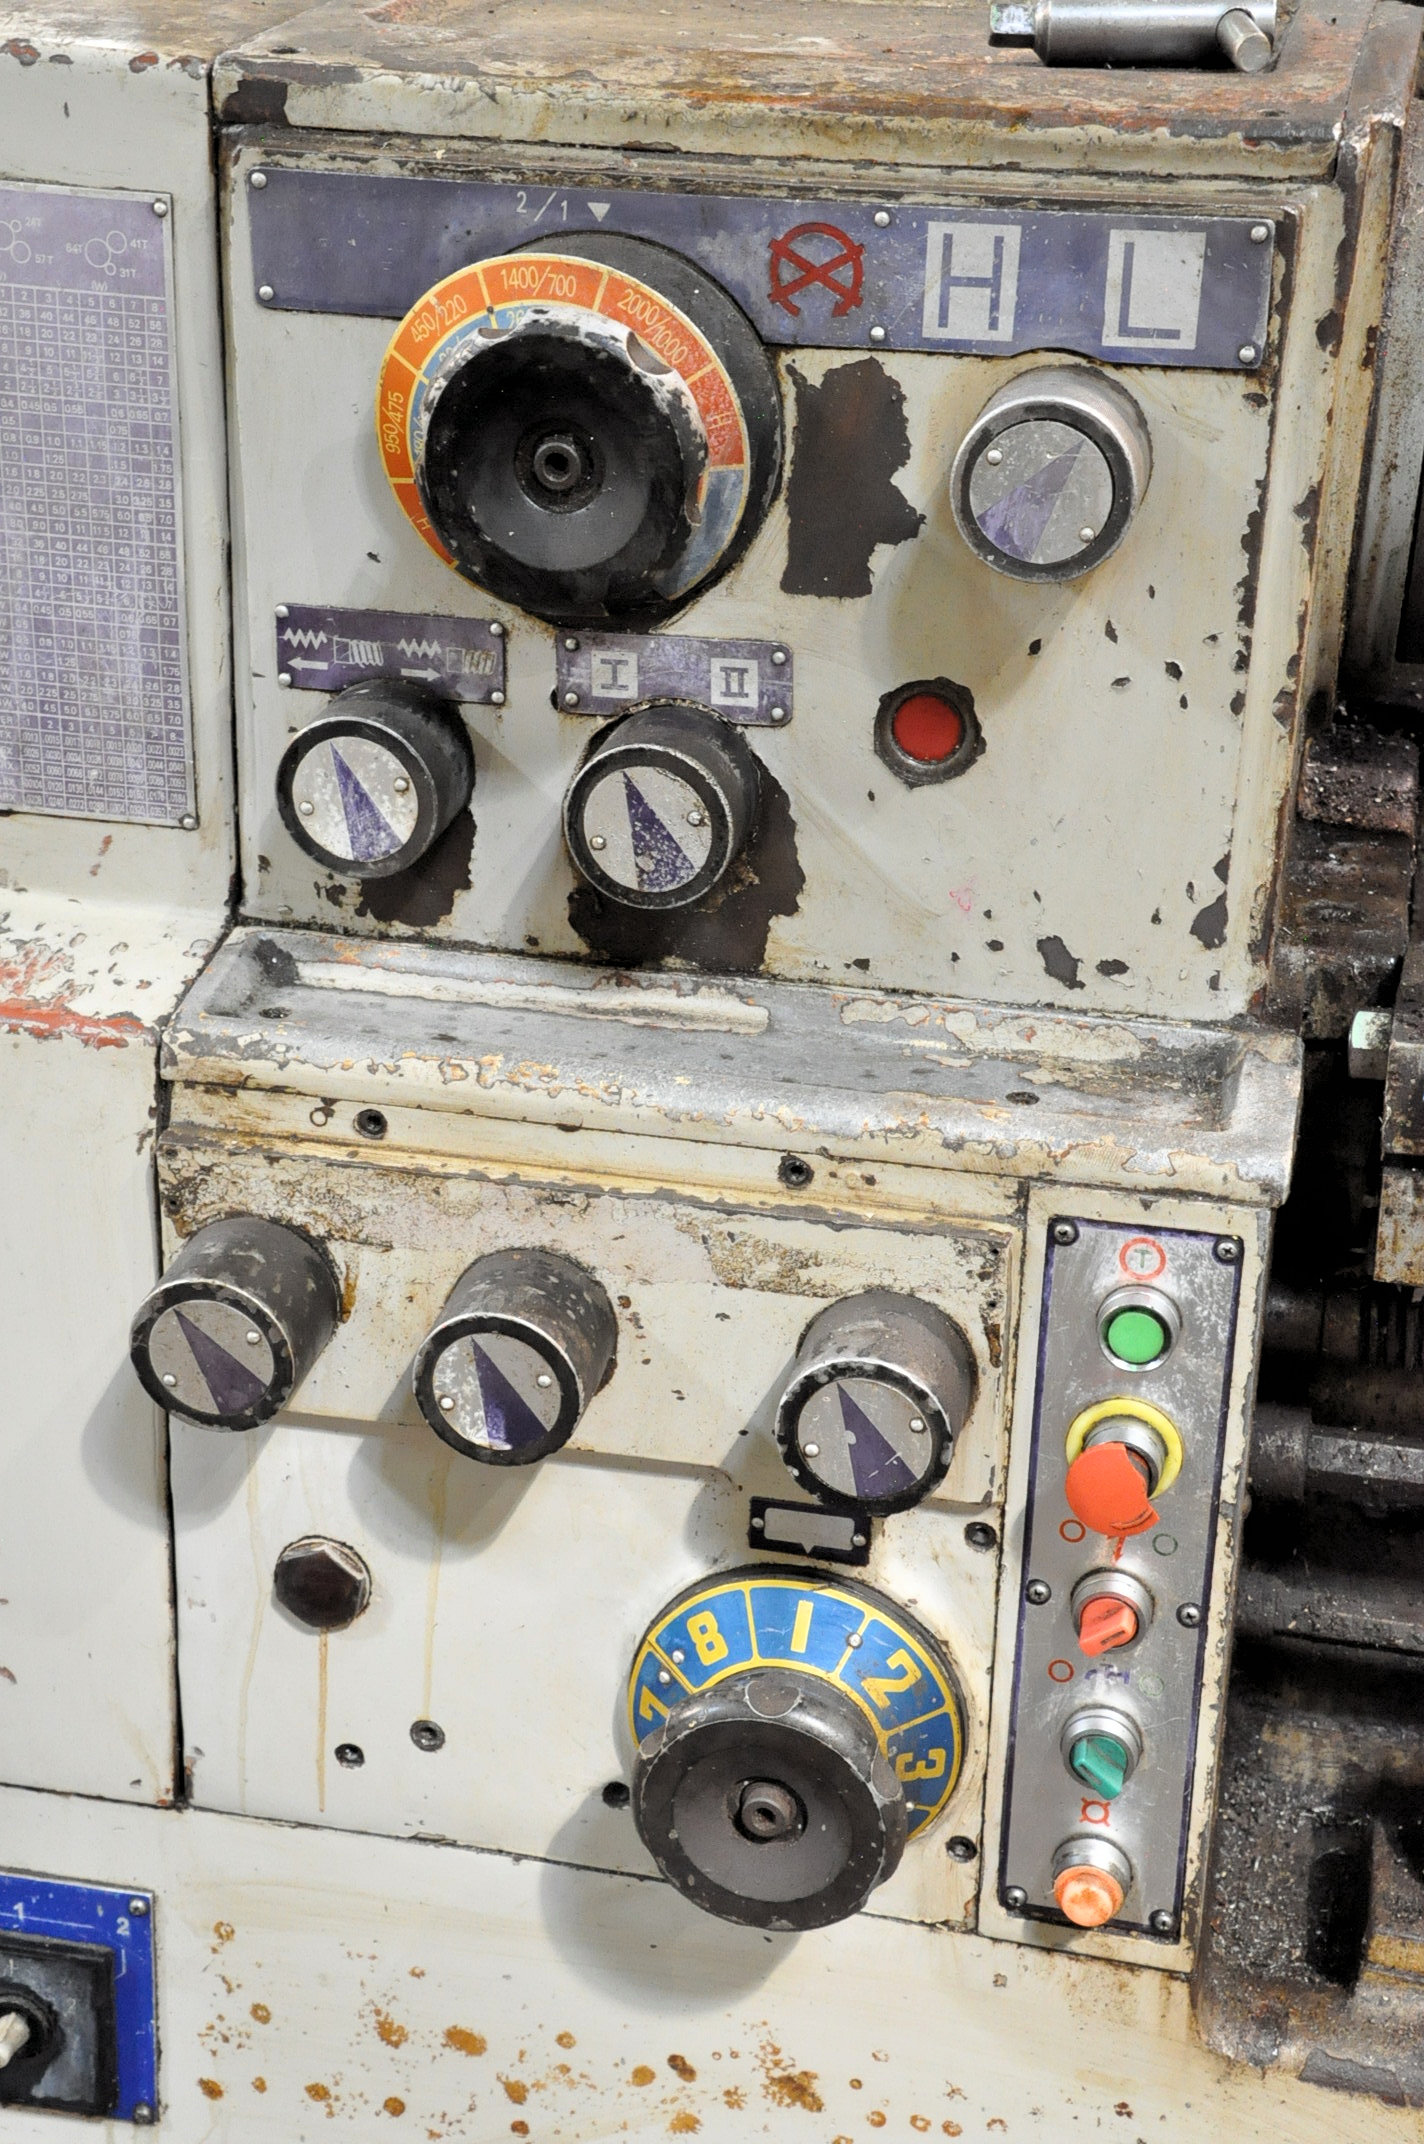 """LS Model 1660G, 16"""" x 60"""" Geared Head Engine Lathe, (1994), 8"""" 3-Jaw Chuck, Tool Post, Tail Stock - Image 6 of 6"""